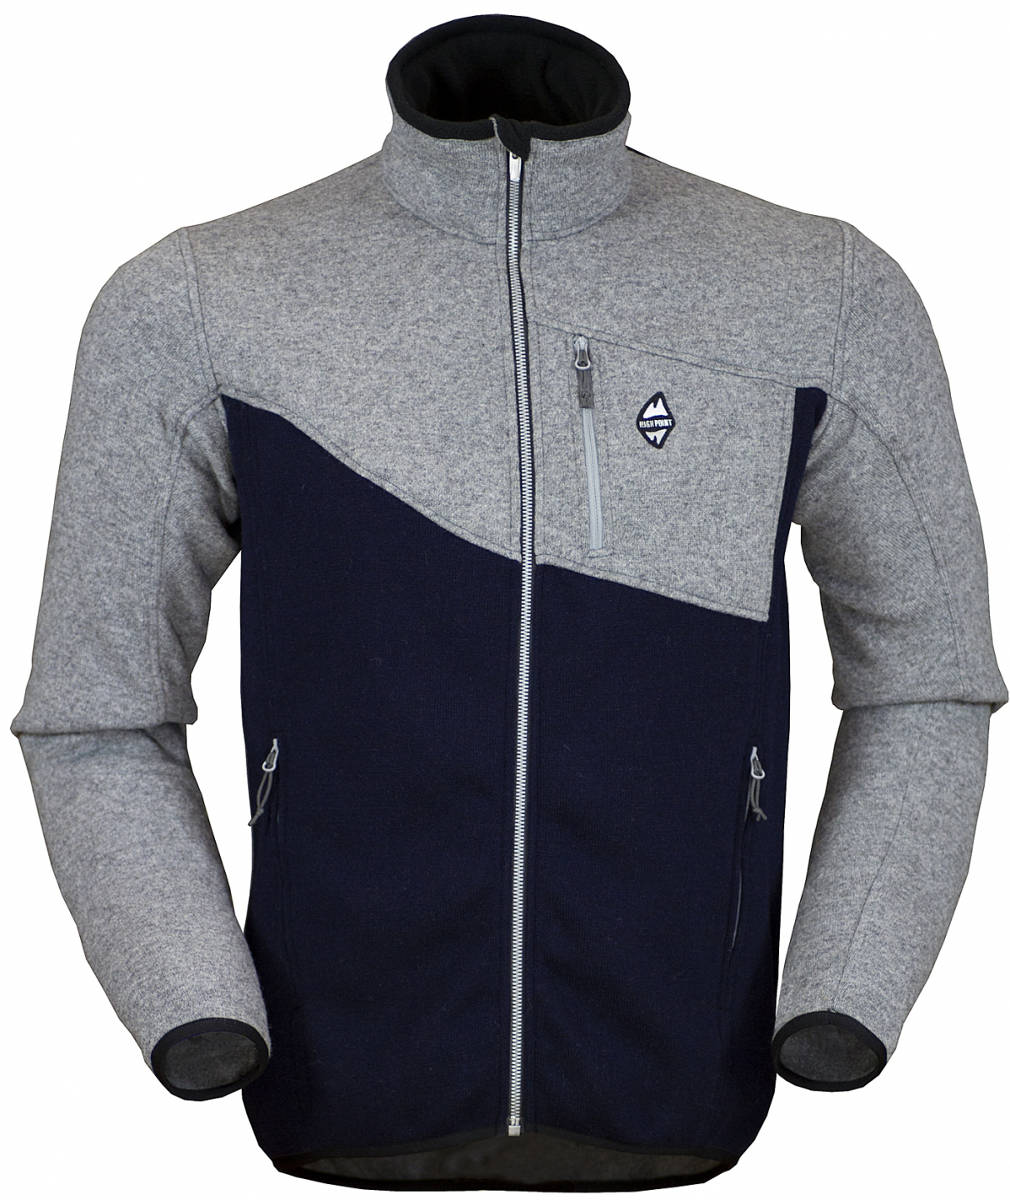 High Point Skywool 2.0 Sweater grey dark blue pánský vlněný svetr Tecnowool a650b48be6